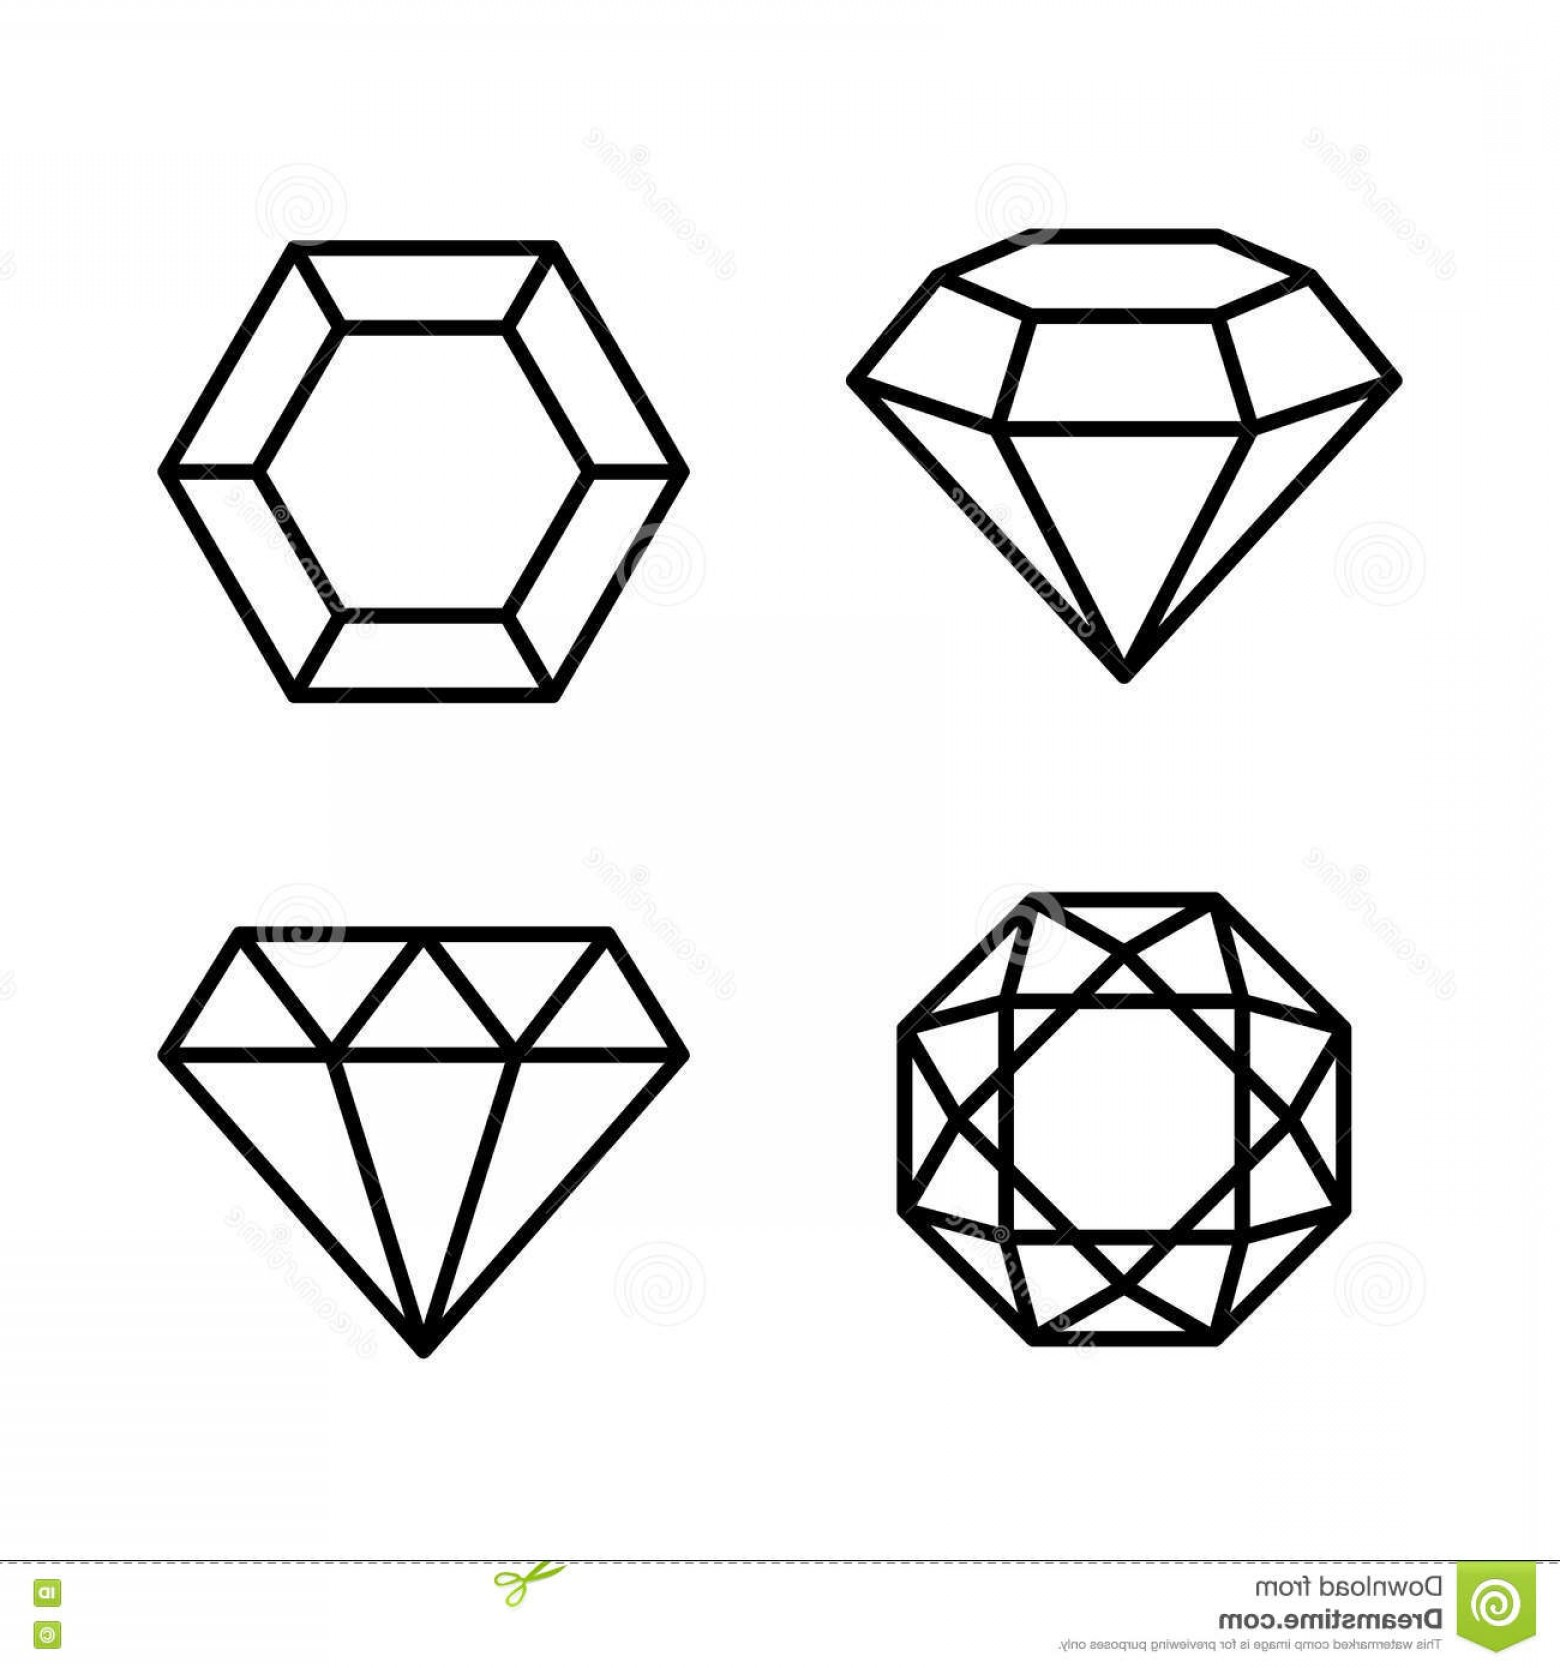 Black Diamond Vector Clip Art: Stock Illustration Diamond Gems Icons Set White Background Vector Illustration Image